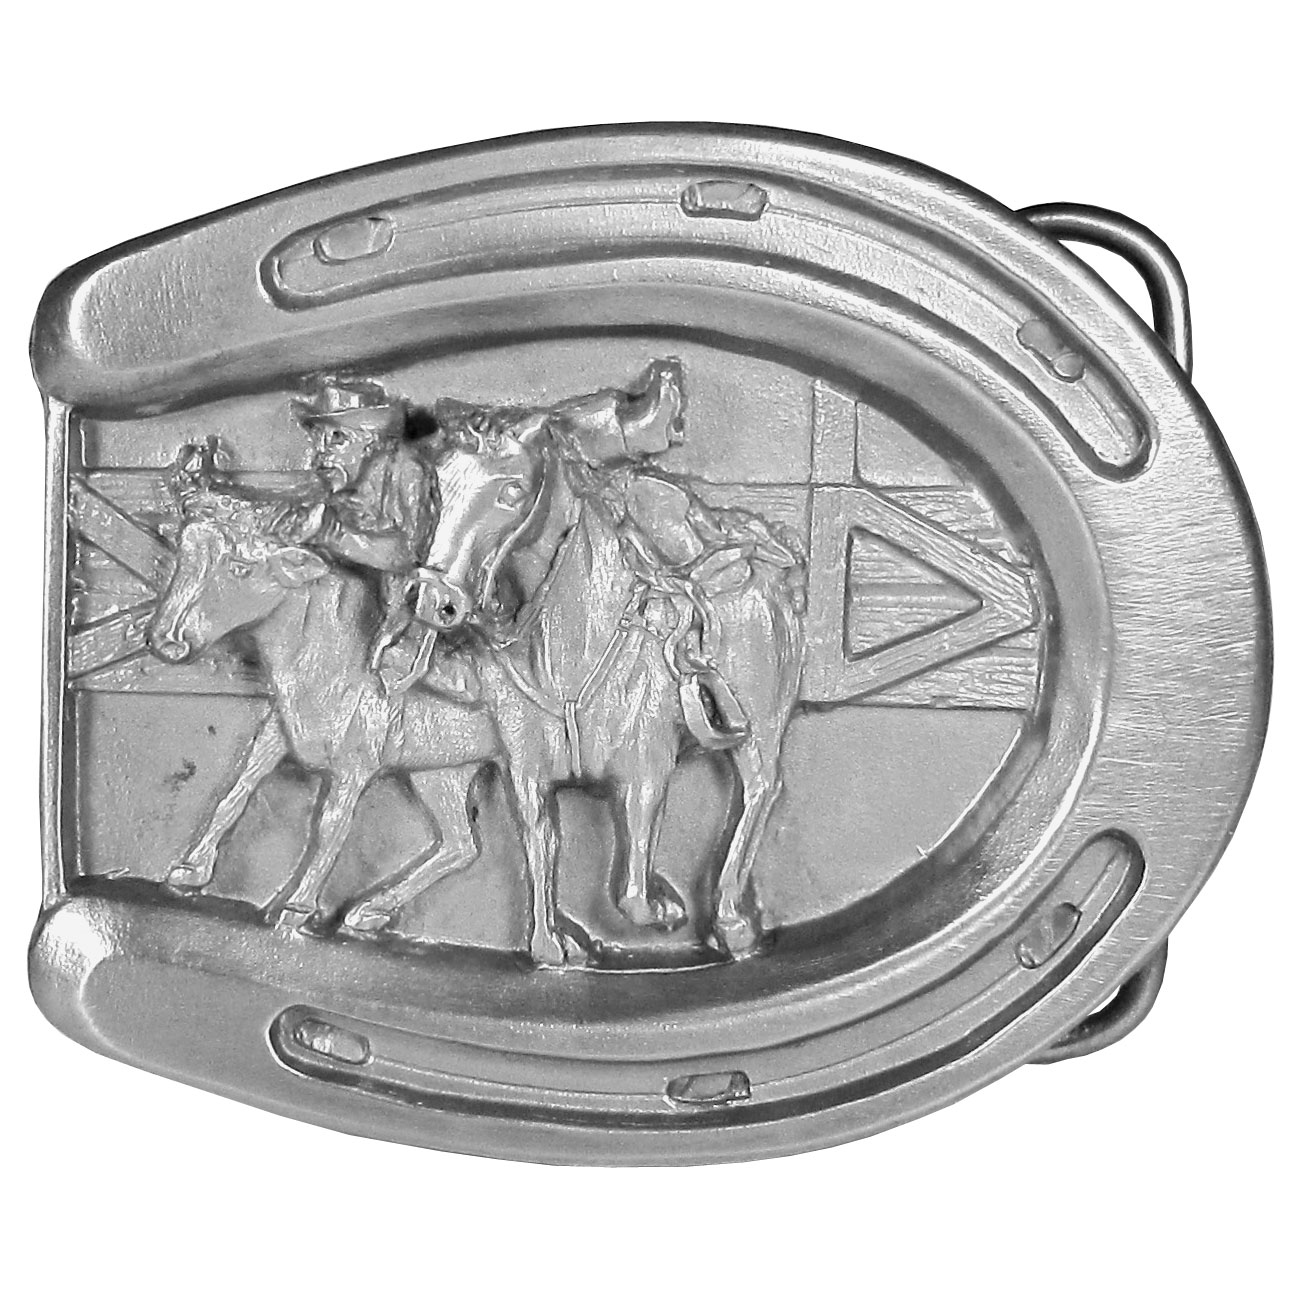 "Rodeo Bulldogging Antiqued Belt Buckle - This belt buckle celebrates Rodeo Bulldogging!  The buckle is in the shape of a horseshoe with a cowboy jumping from his horse to a steer in an arena. This exquisitely carved buckle is made of fully cast metal with a standard bale that fits up to 2"" belts."